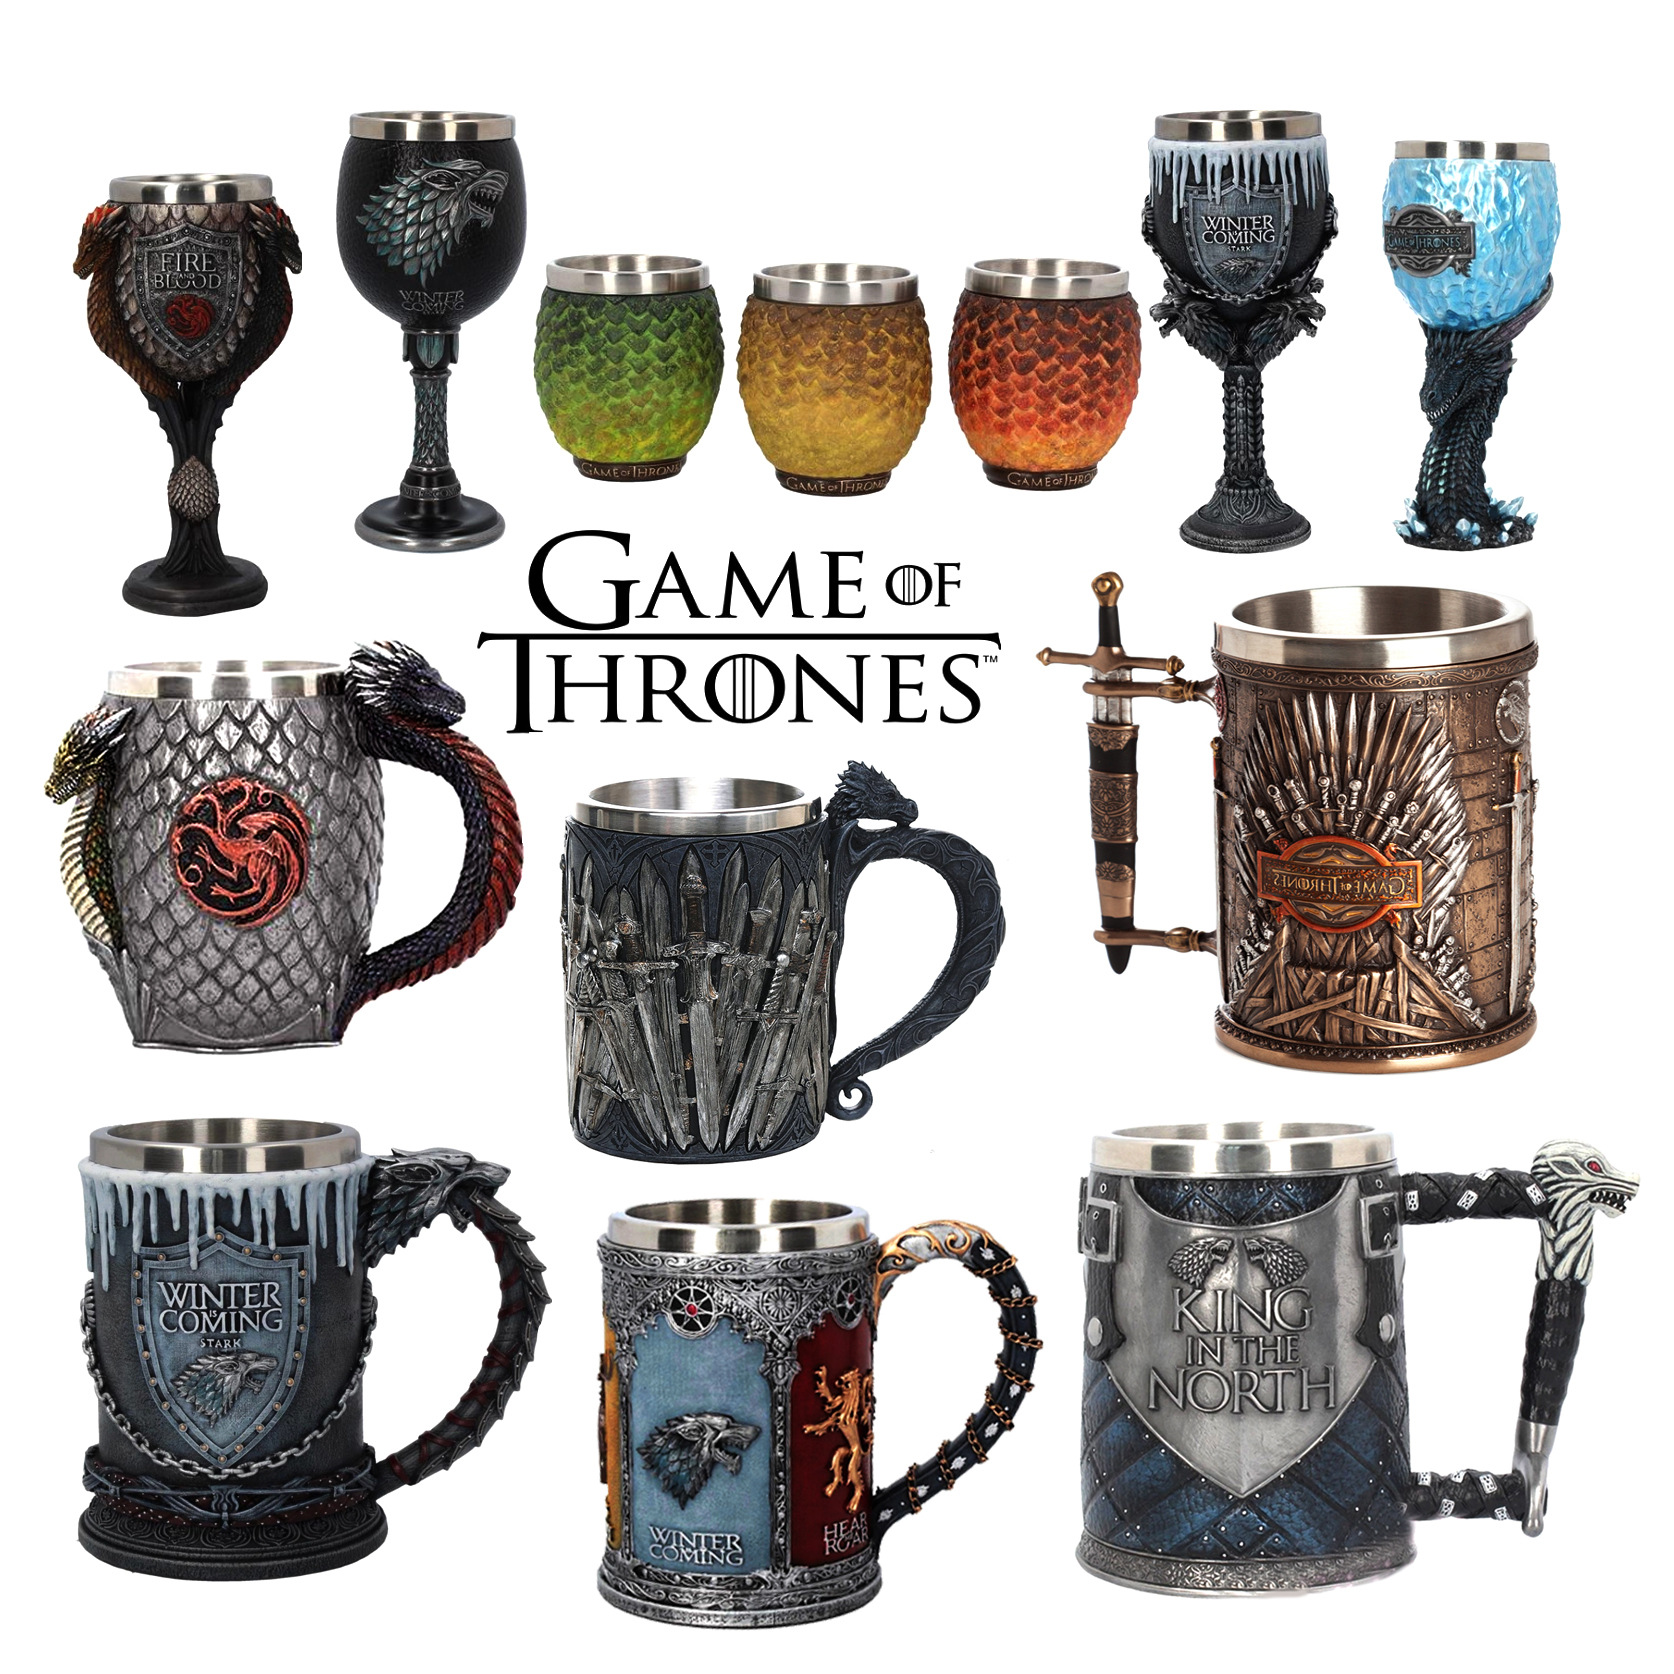 Stainless Steel Thrones Mug Stark Legends of The Swords,Song of Ice and Fire Viking Horn Beer Mug Drinking Coffee Mugs and Cups image